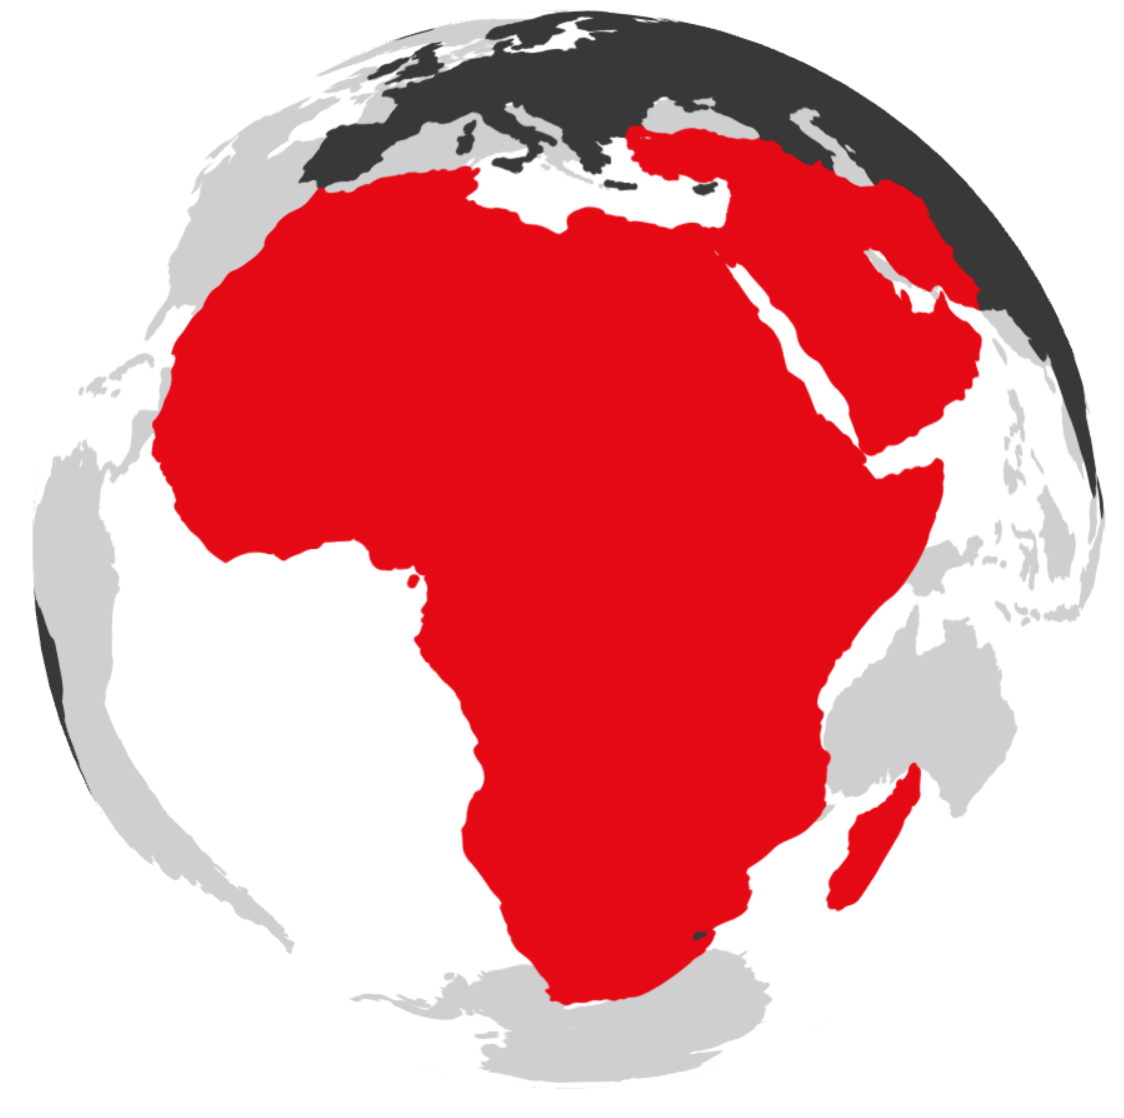 Middle East & Africa